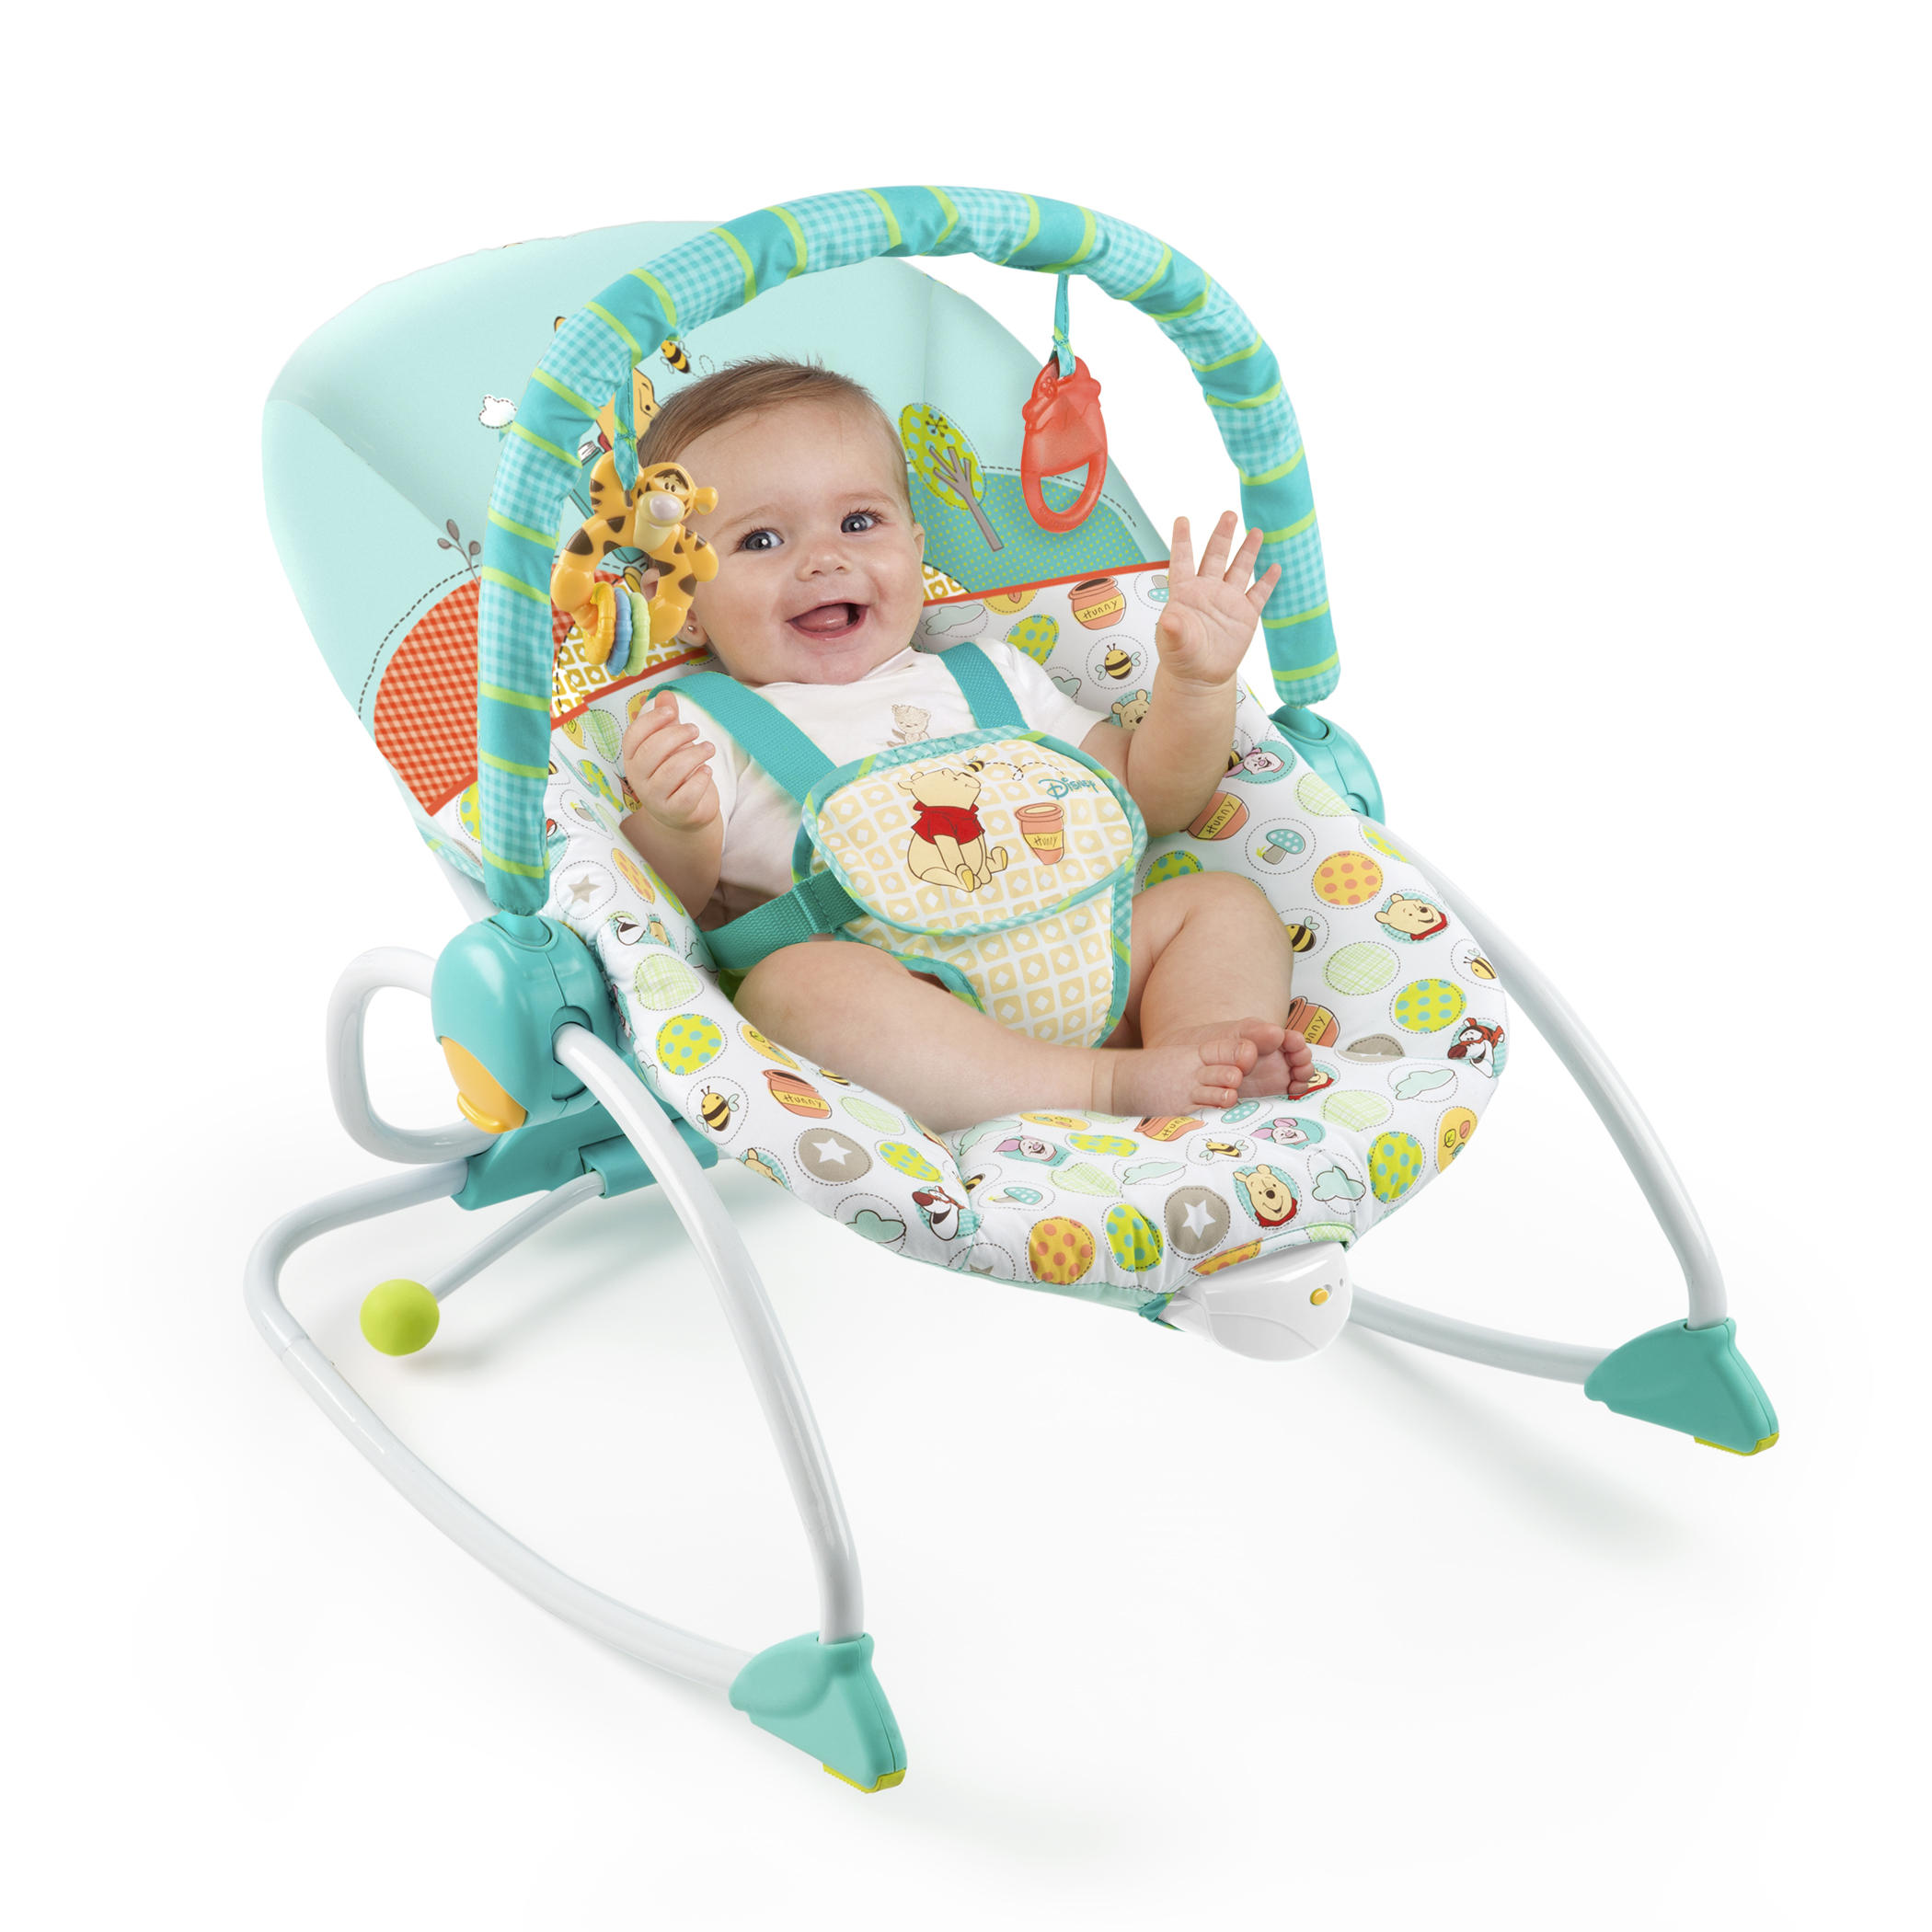 Disney Baby WINNIE THE POOH Baby to Big Kid Rocking Seat Walmart